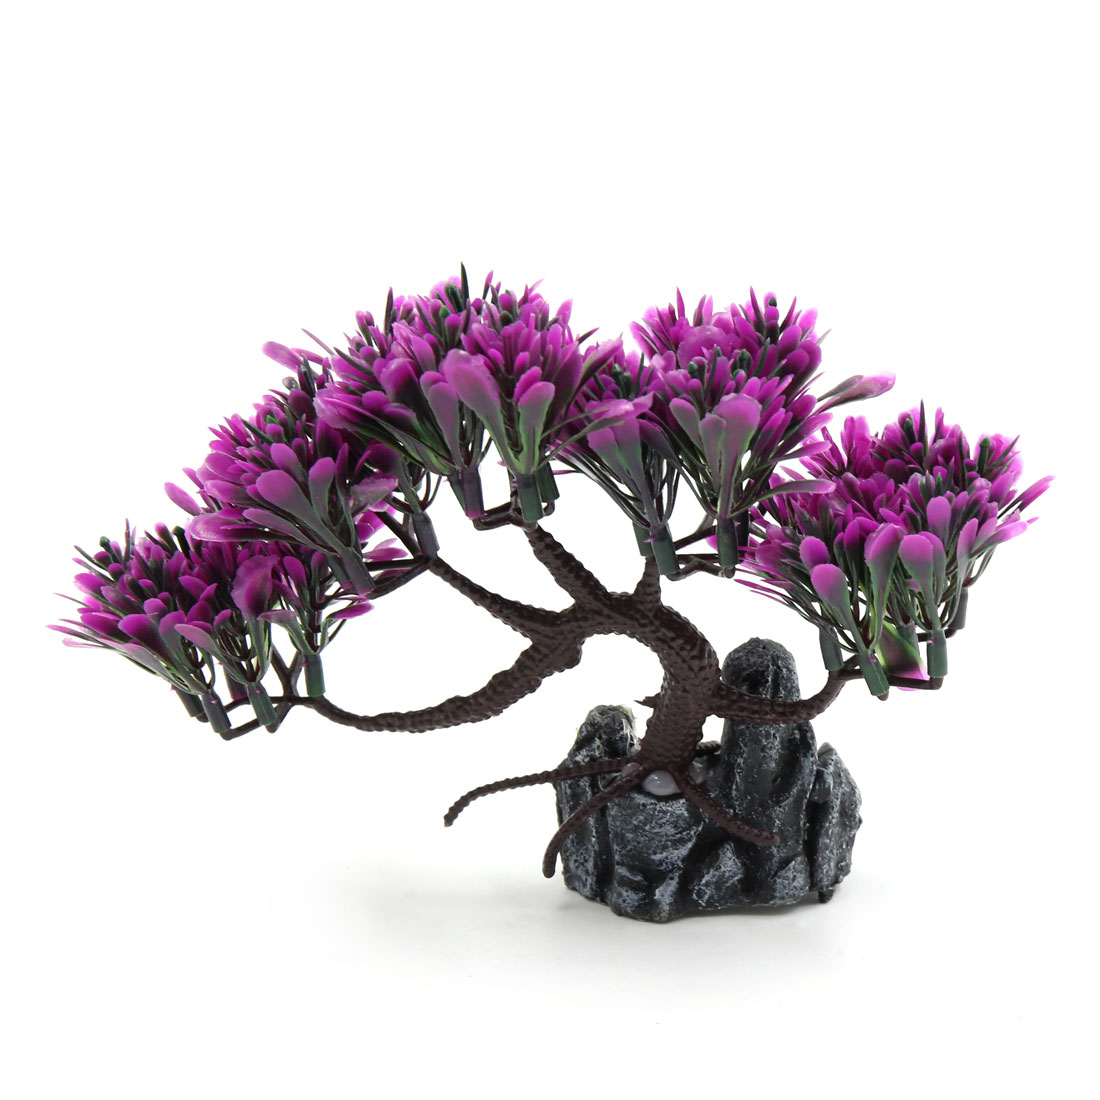 Aquarium Decorative Plastic Plant Aqua Landscape Ornament Home Decoration Purple